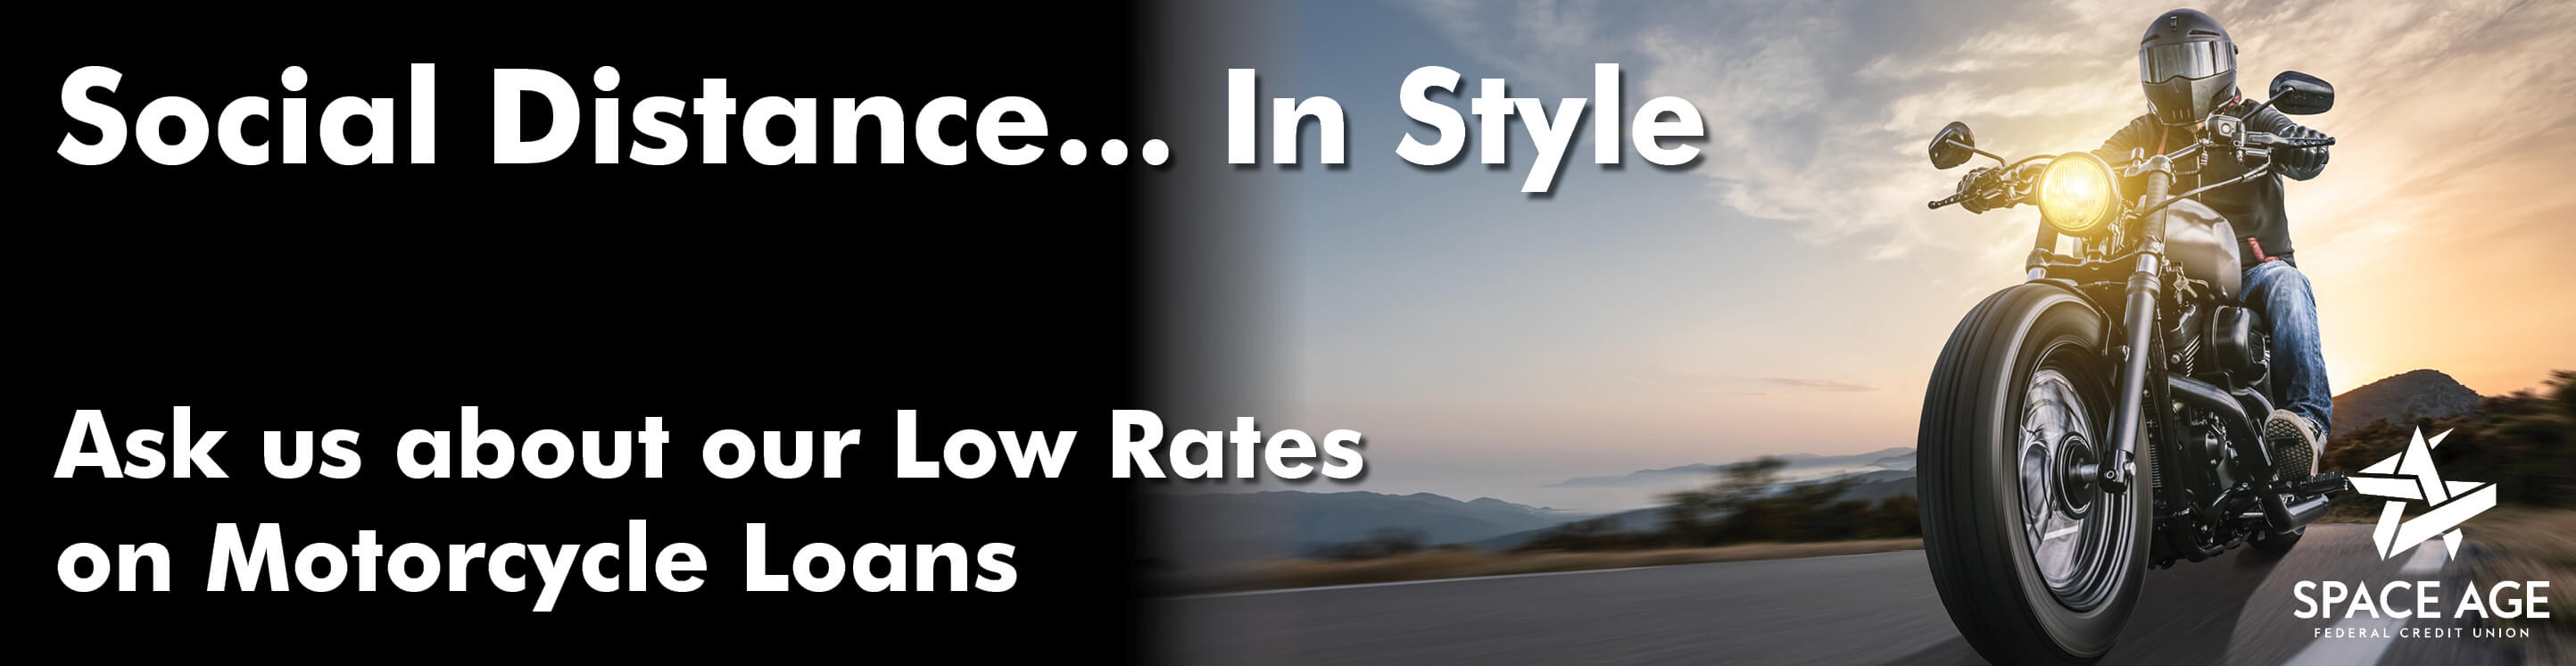 Social distance in style. Ask us about our low rates on motorcycle loans